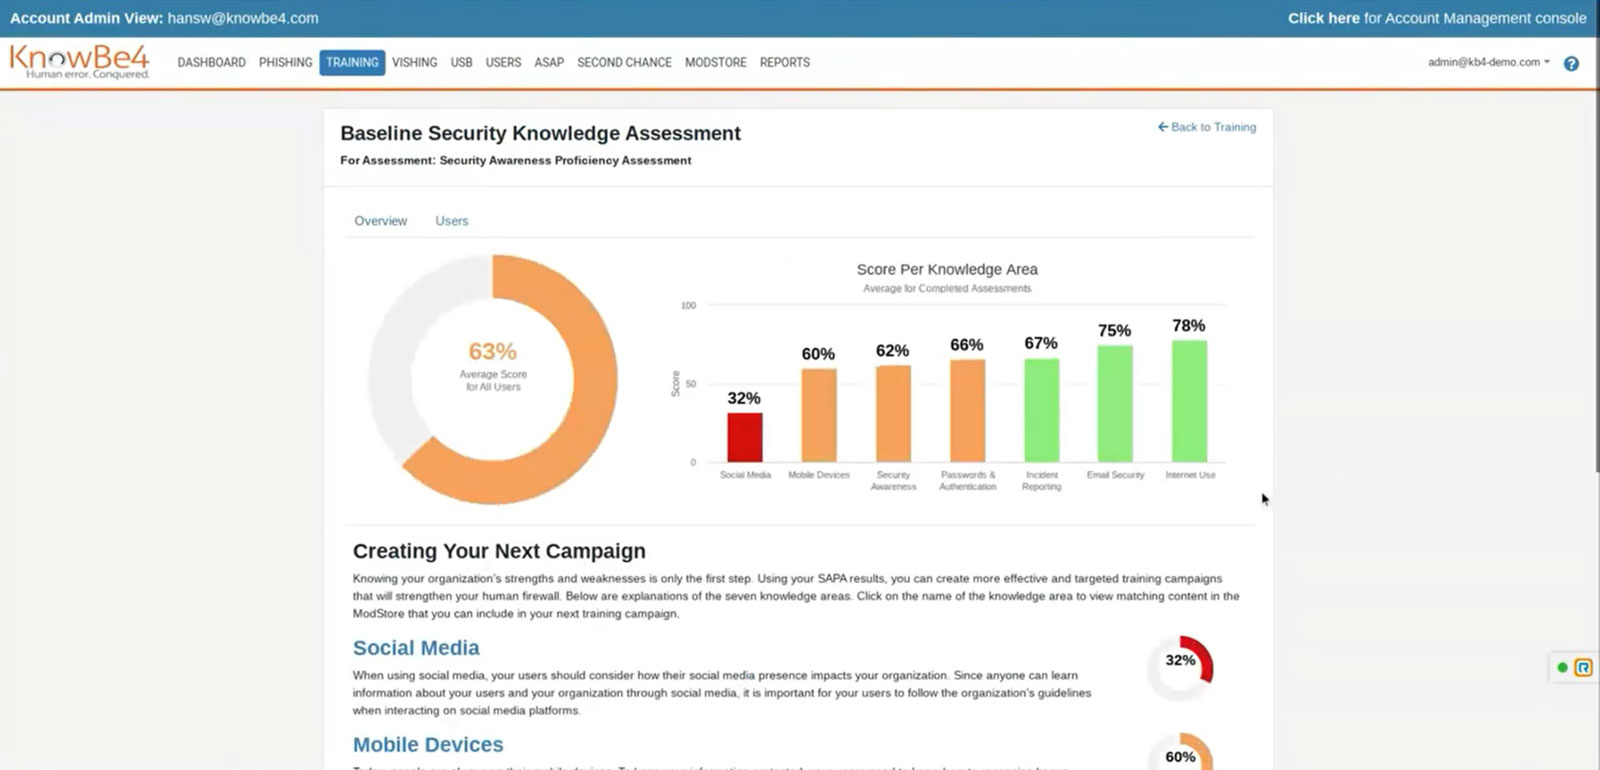 KnowBe4 Security Awareness - Baseline Security Knowledge Assessment | VanRoey.be